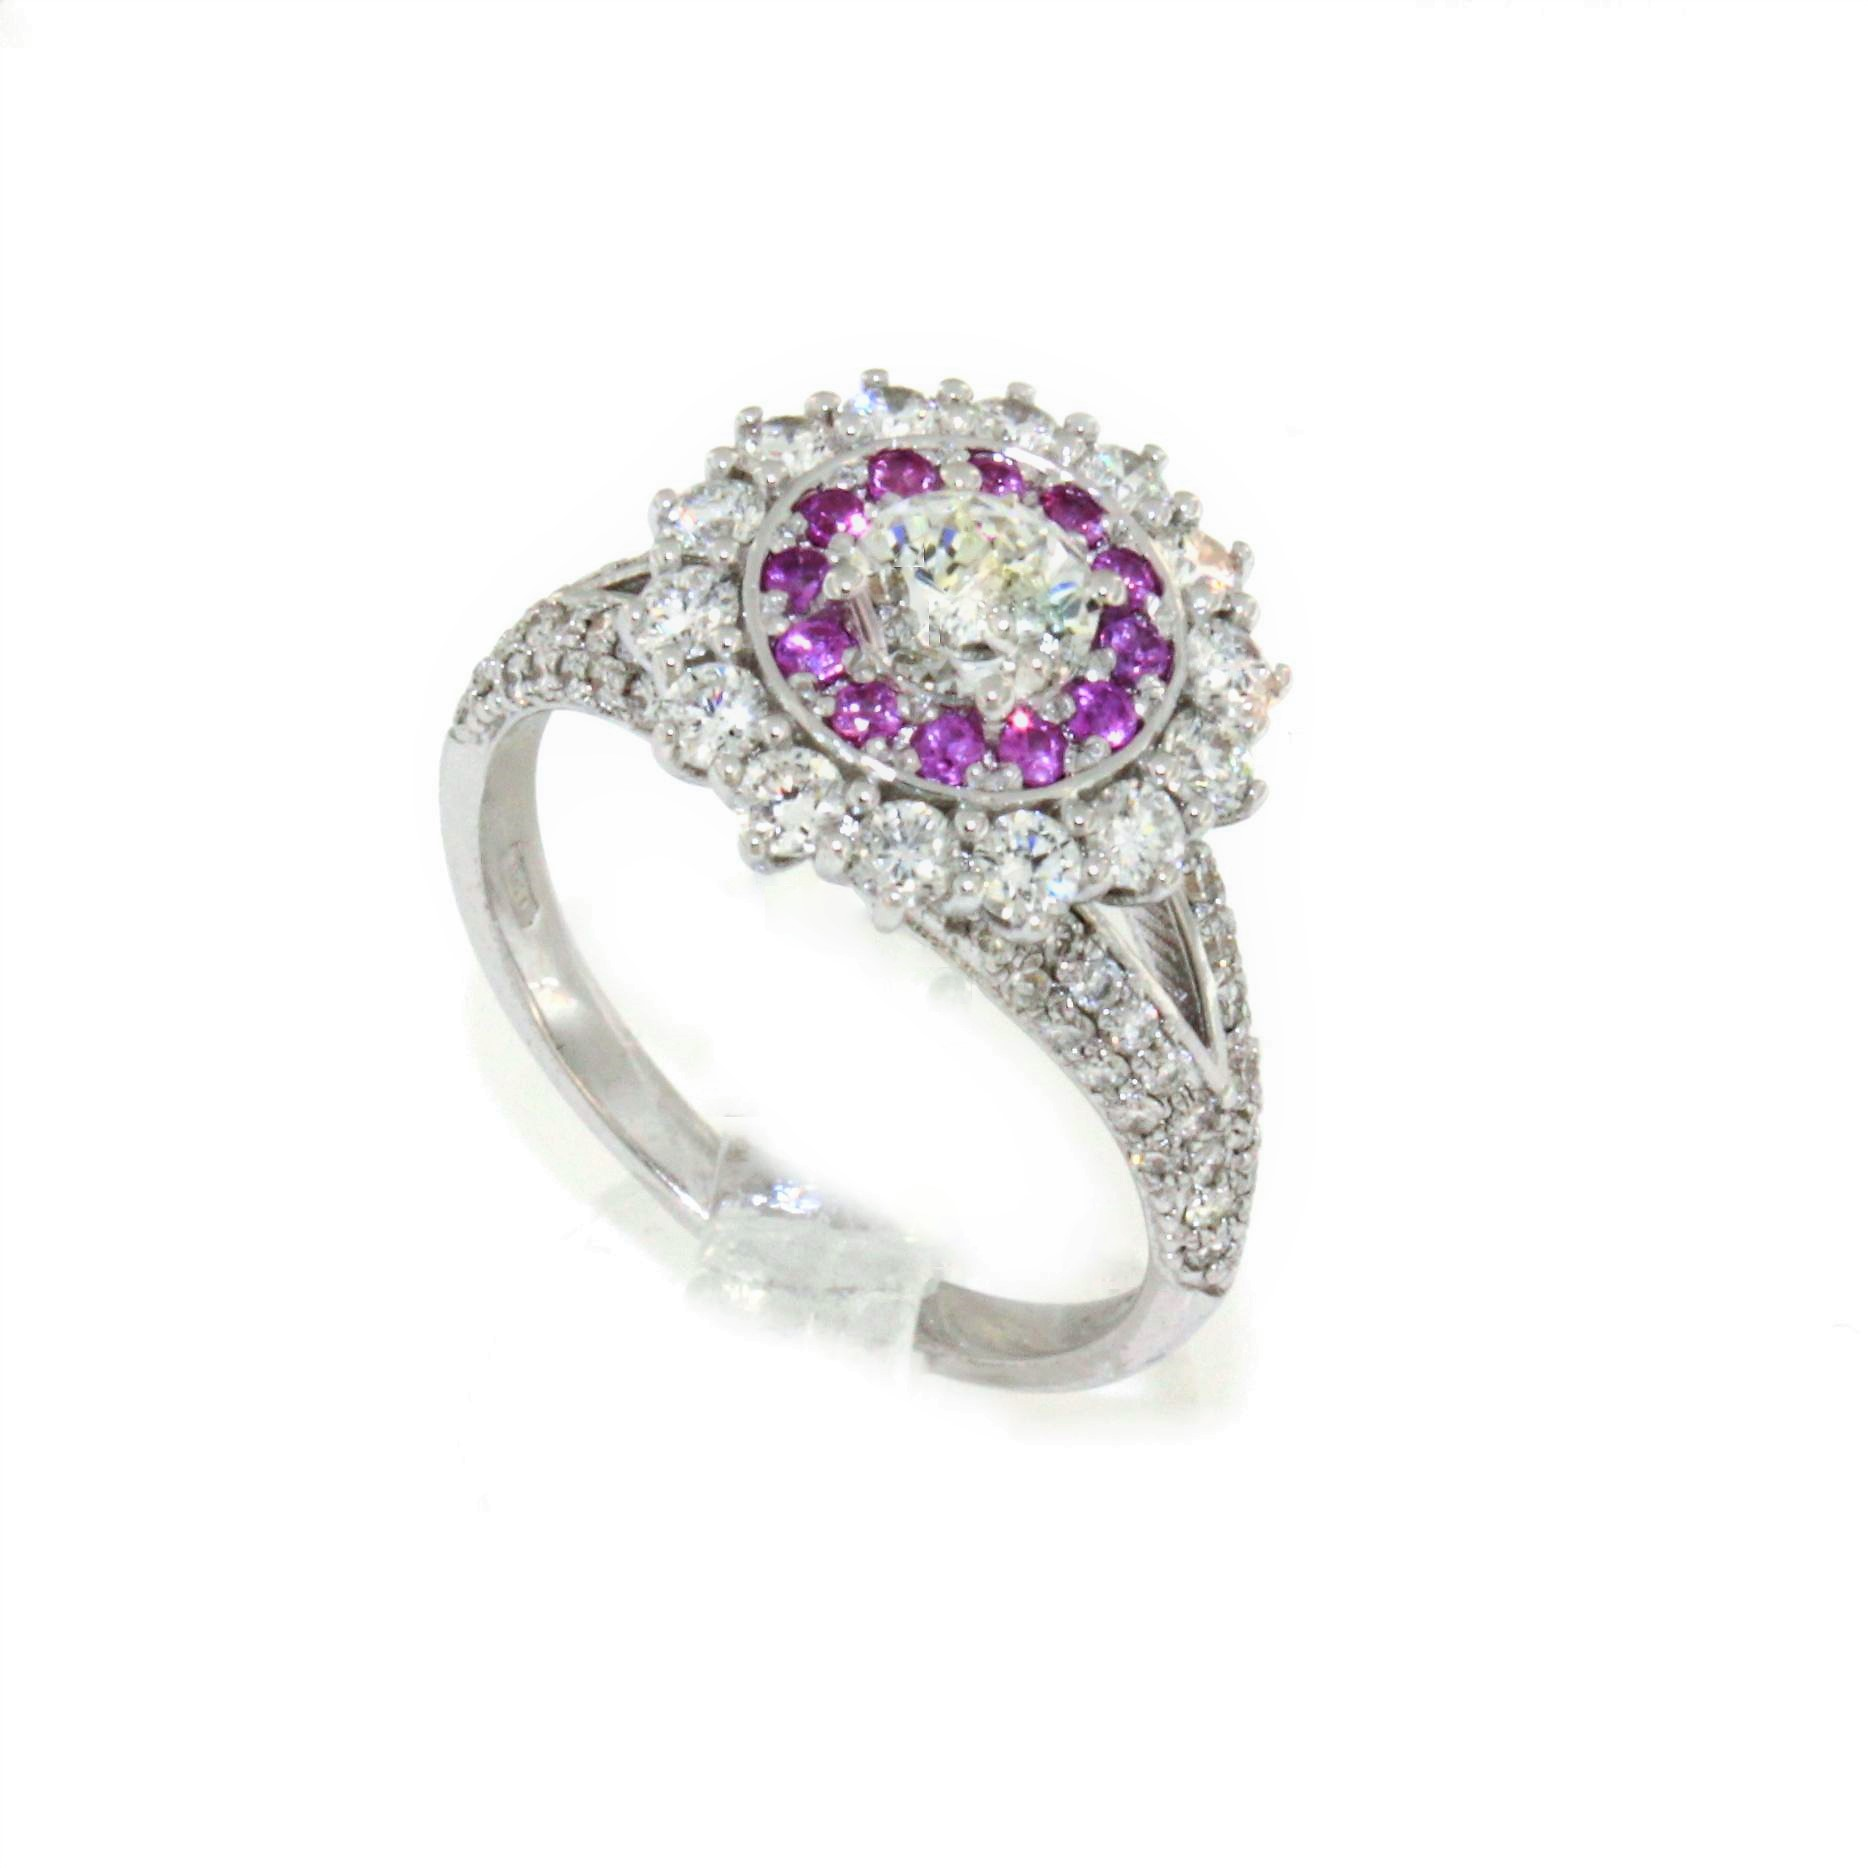 ring in withe gold 18kt with natural diamond and pink diamond